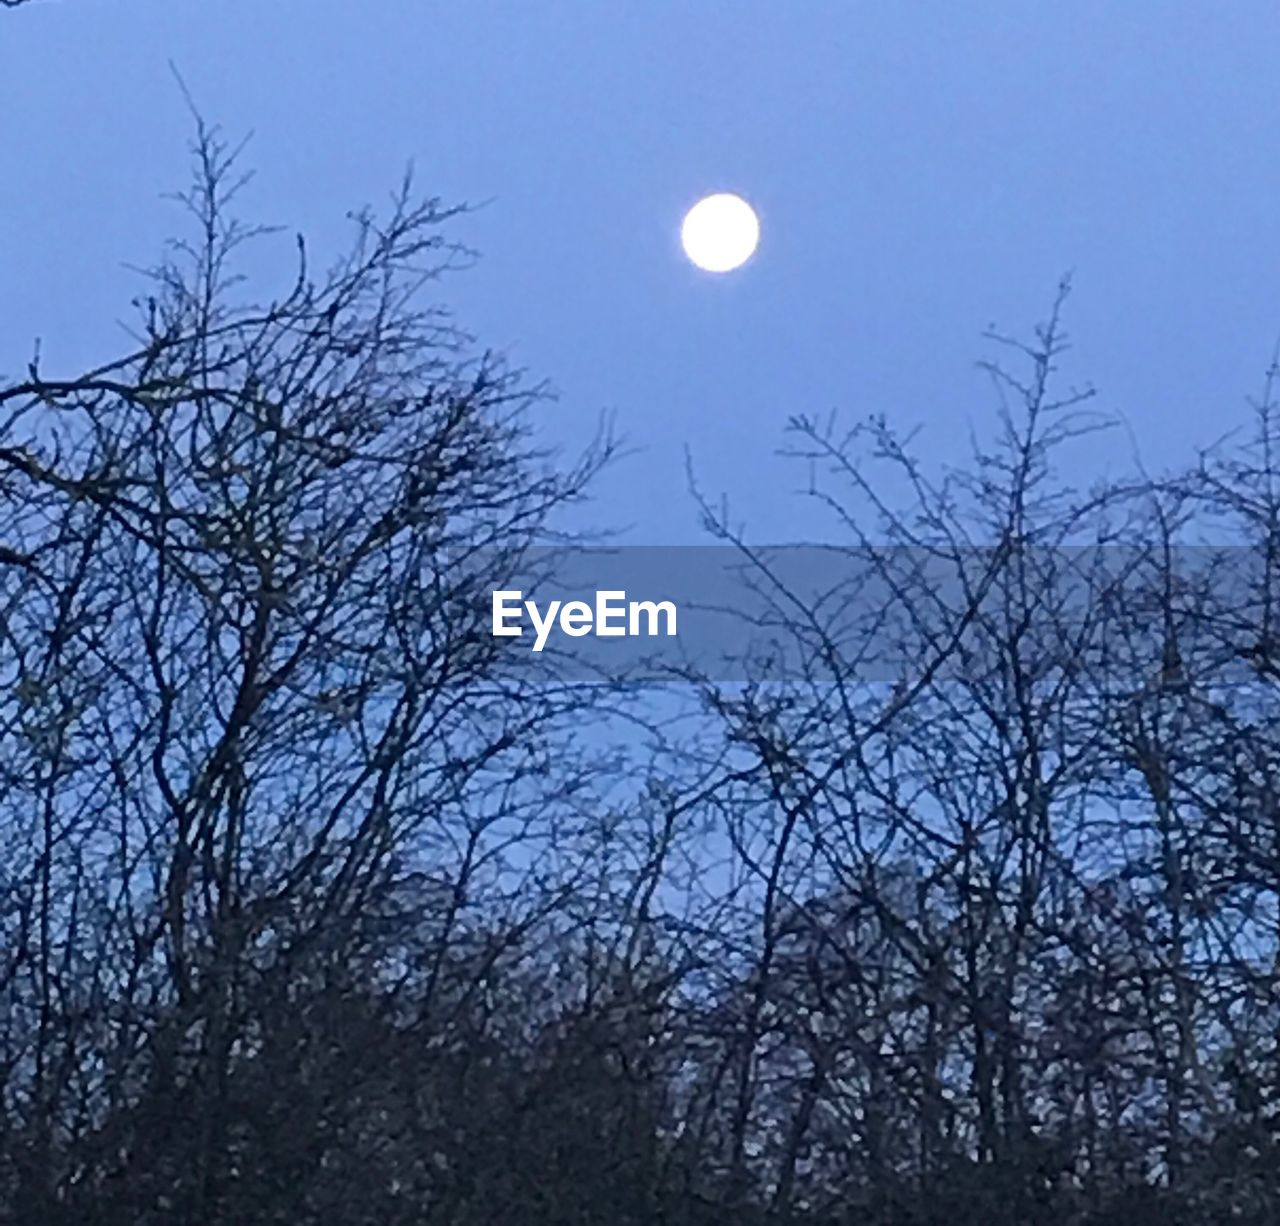 tree, moon, sky, plant, bare tree, low angle view, branch, nature, beauty in nature, night, scenics - nature, no people, silhouette, tranquility, space, dusk, tranquil scene, outdoors, full moon, astronomy, planetary moon, moonlight